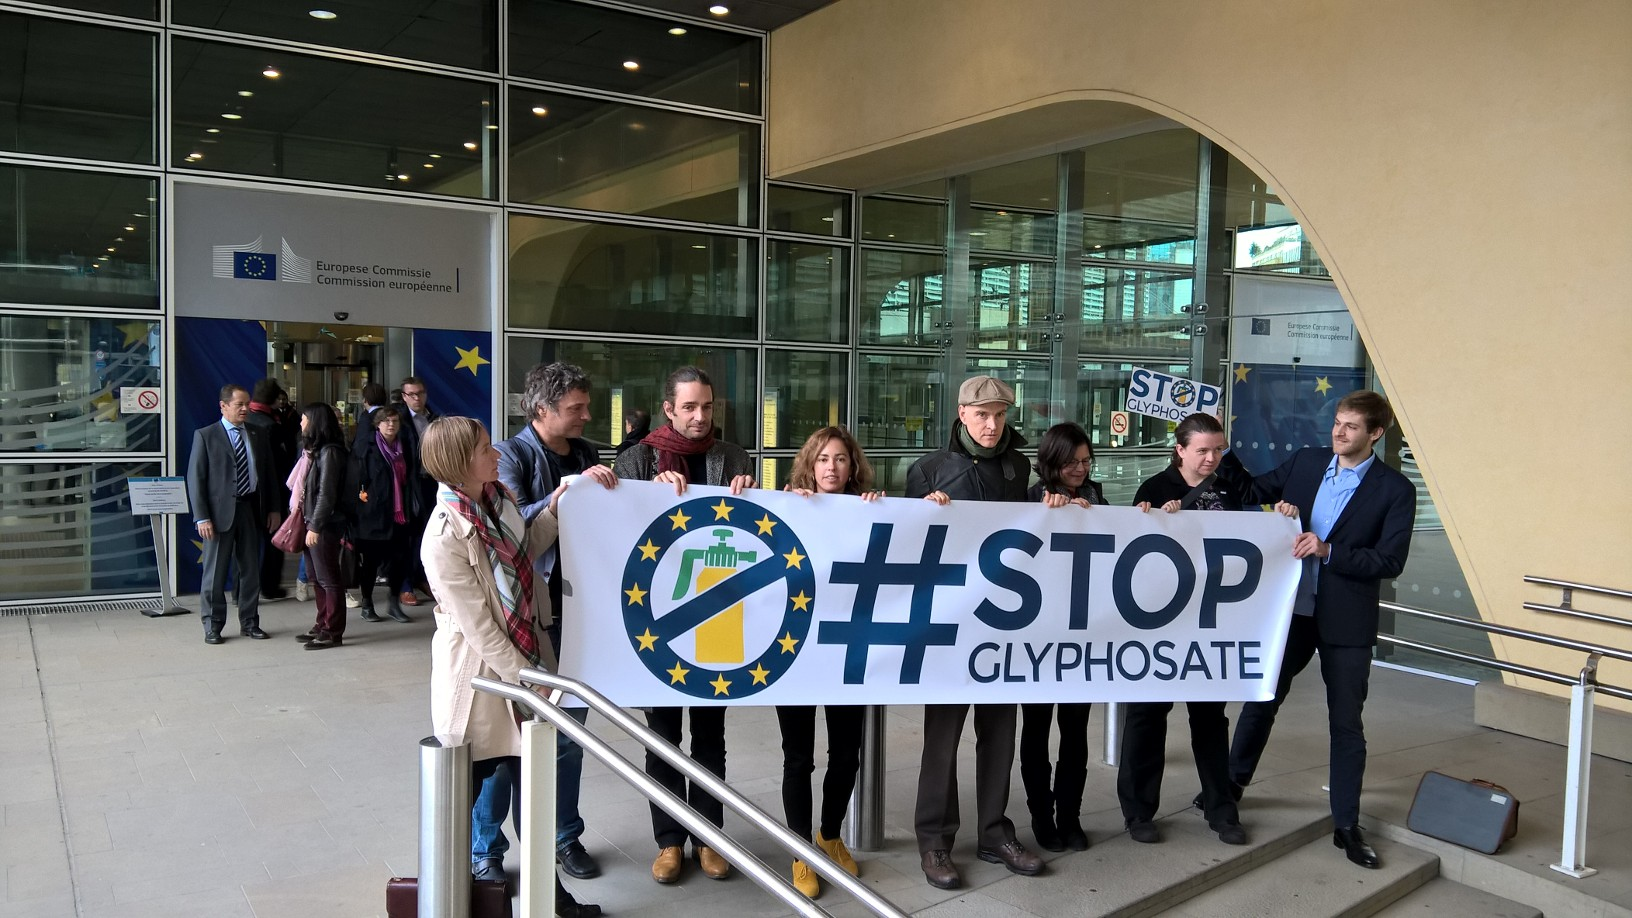 Member states' vote on glyphosate delayed yet again